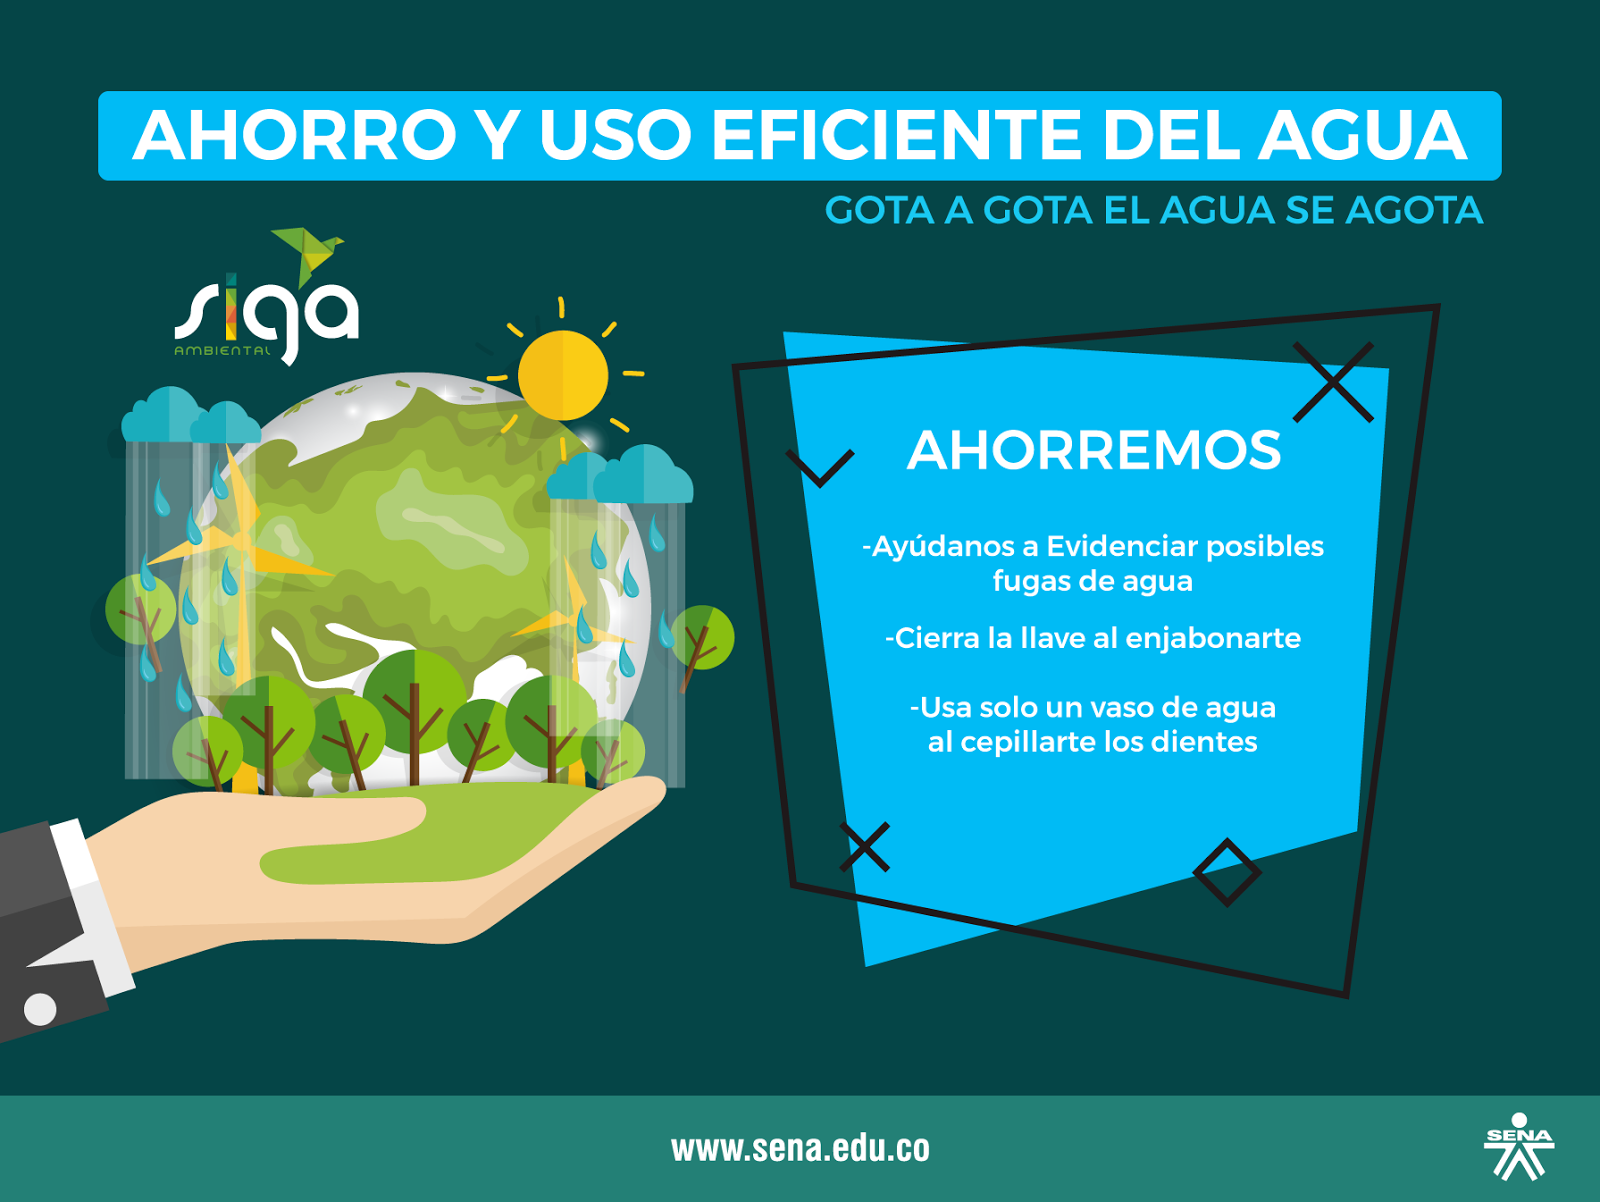 Ahorro Del Agua Uso Y Ahorro Eficiente Del Agua Full Hd Maps Locations